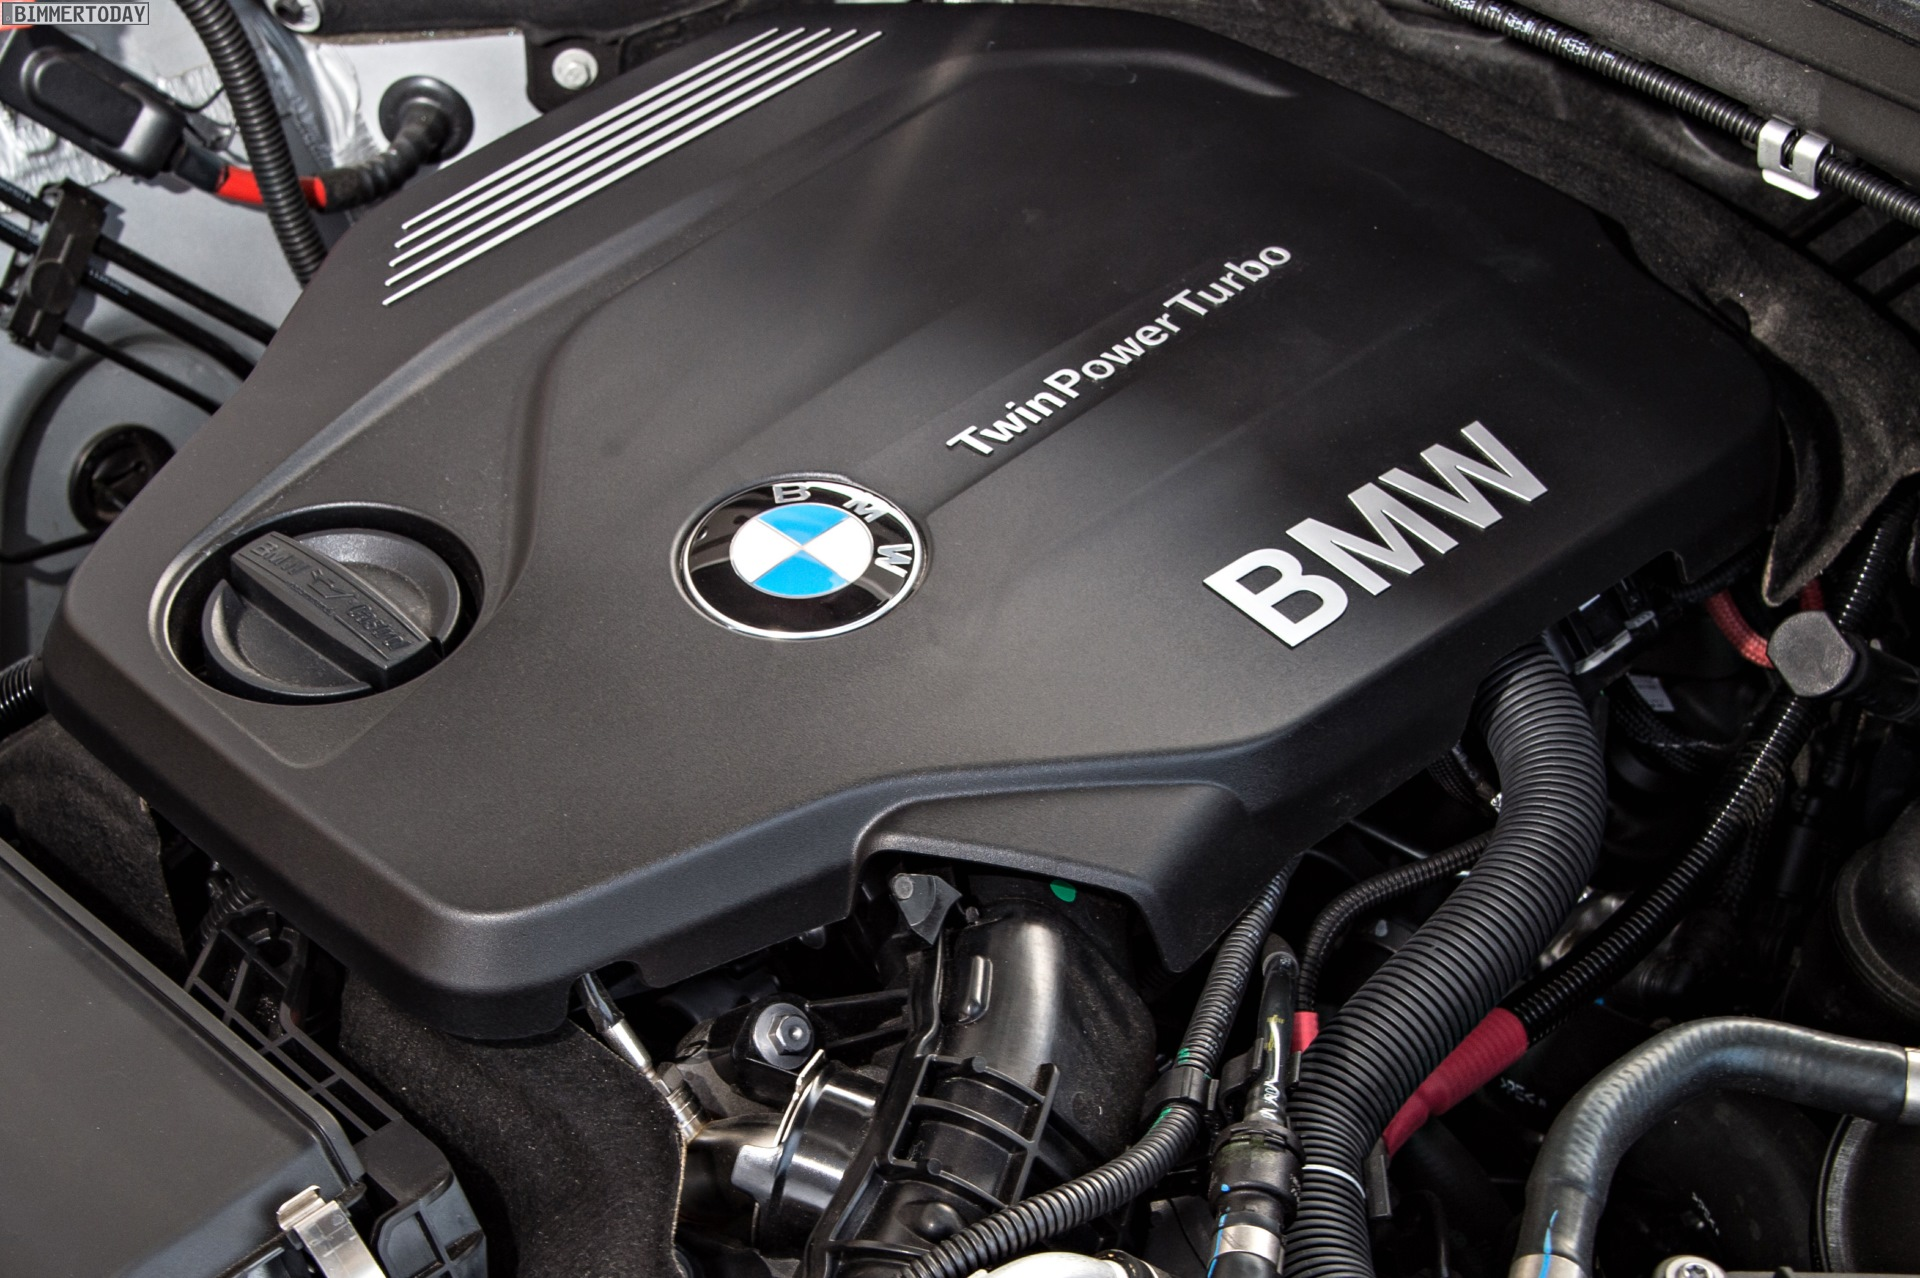 BMW modular engines: B37, B38, B47 and B48